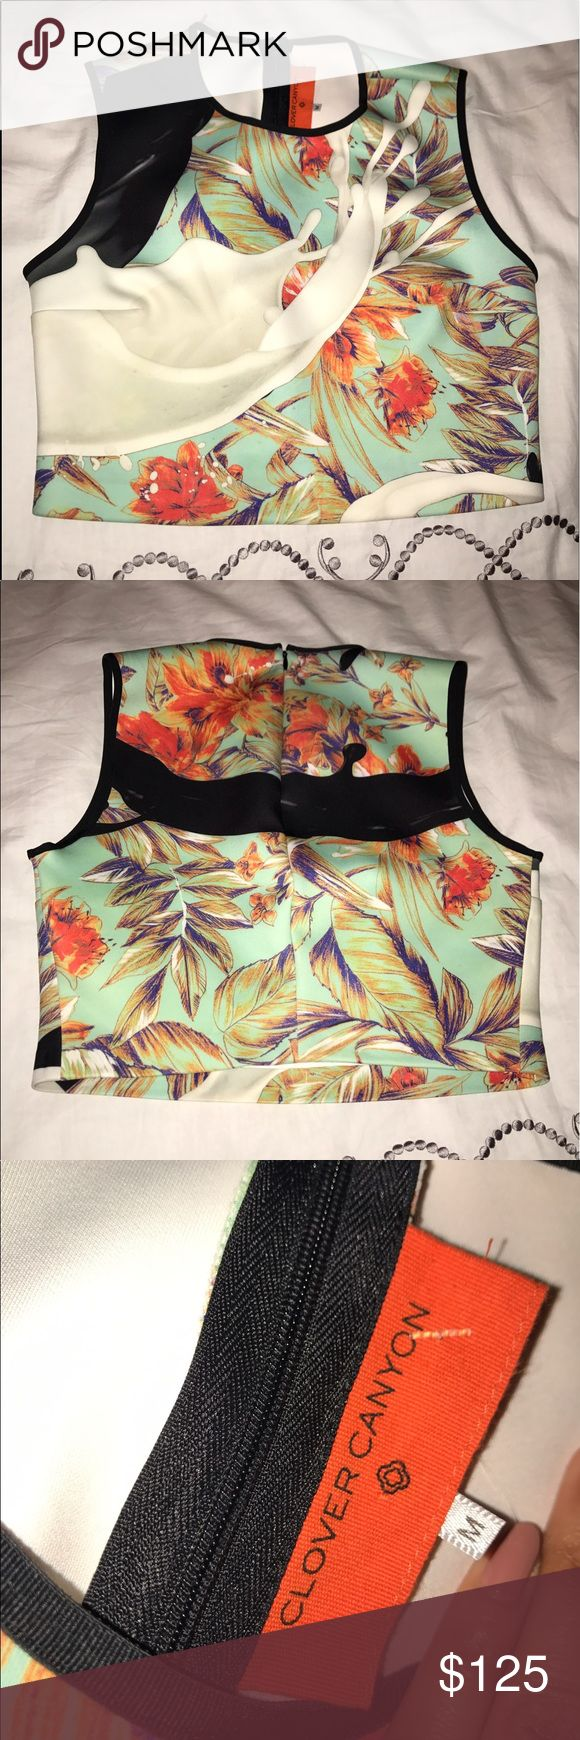 Clover canyon crop top Clover Canyon crop top - never worn - a beautiful blend of tourqouise with a splash on the front and a coral flower print with accents of purple & orange throughout Clover Canyon Tops Crop Tops